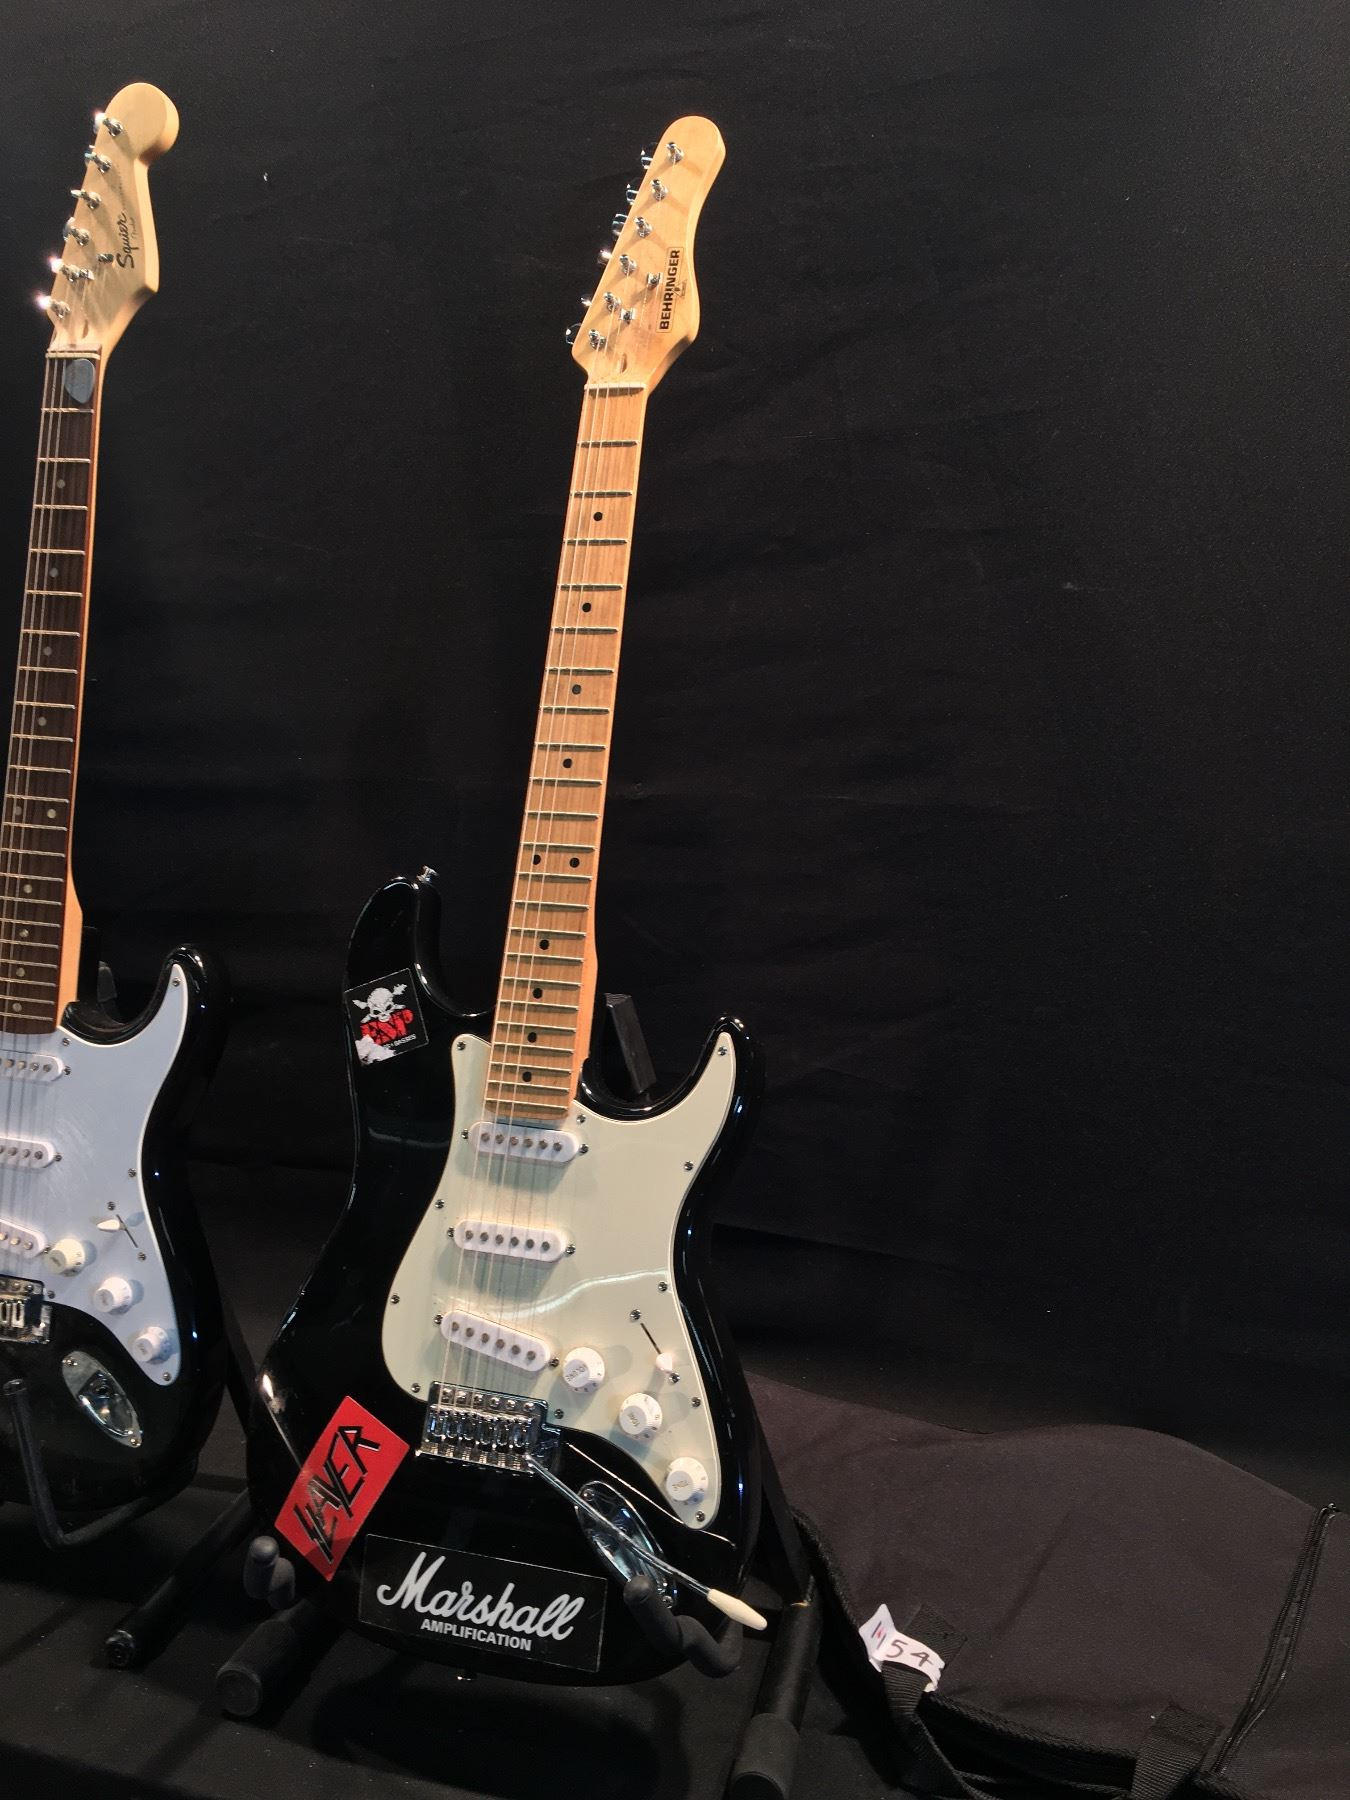 Wonderful Ibanez Rg Wiring Huge Ibanez Wiring Shaped Dimarzio Switch Security Diagram Youthful One Humbucker One Volume ColouredSolar Panel Wiring 3 GUITARS: SQUIER STRAT GUITAR, BEHRINGER STRAT STYLE GUITAR WITH ..